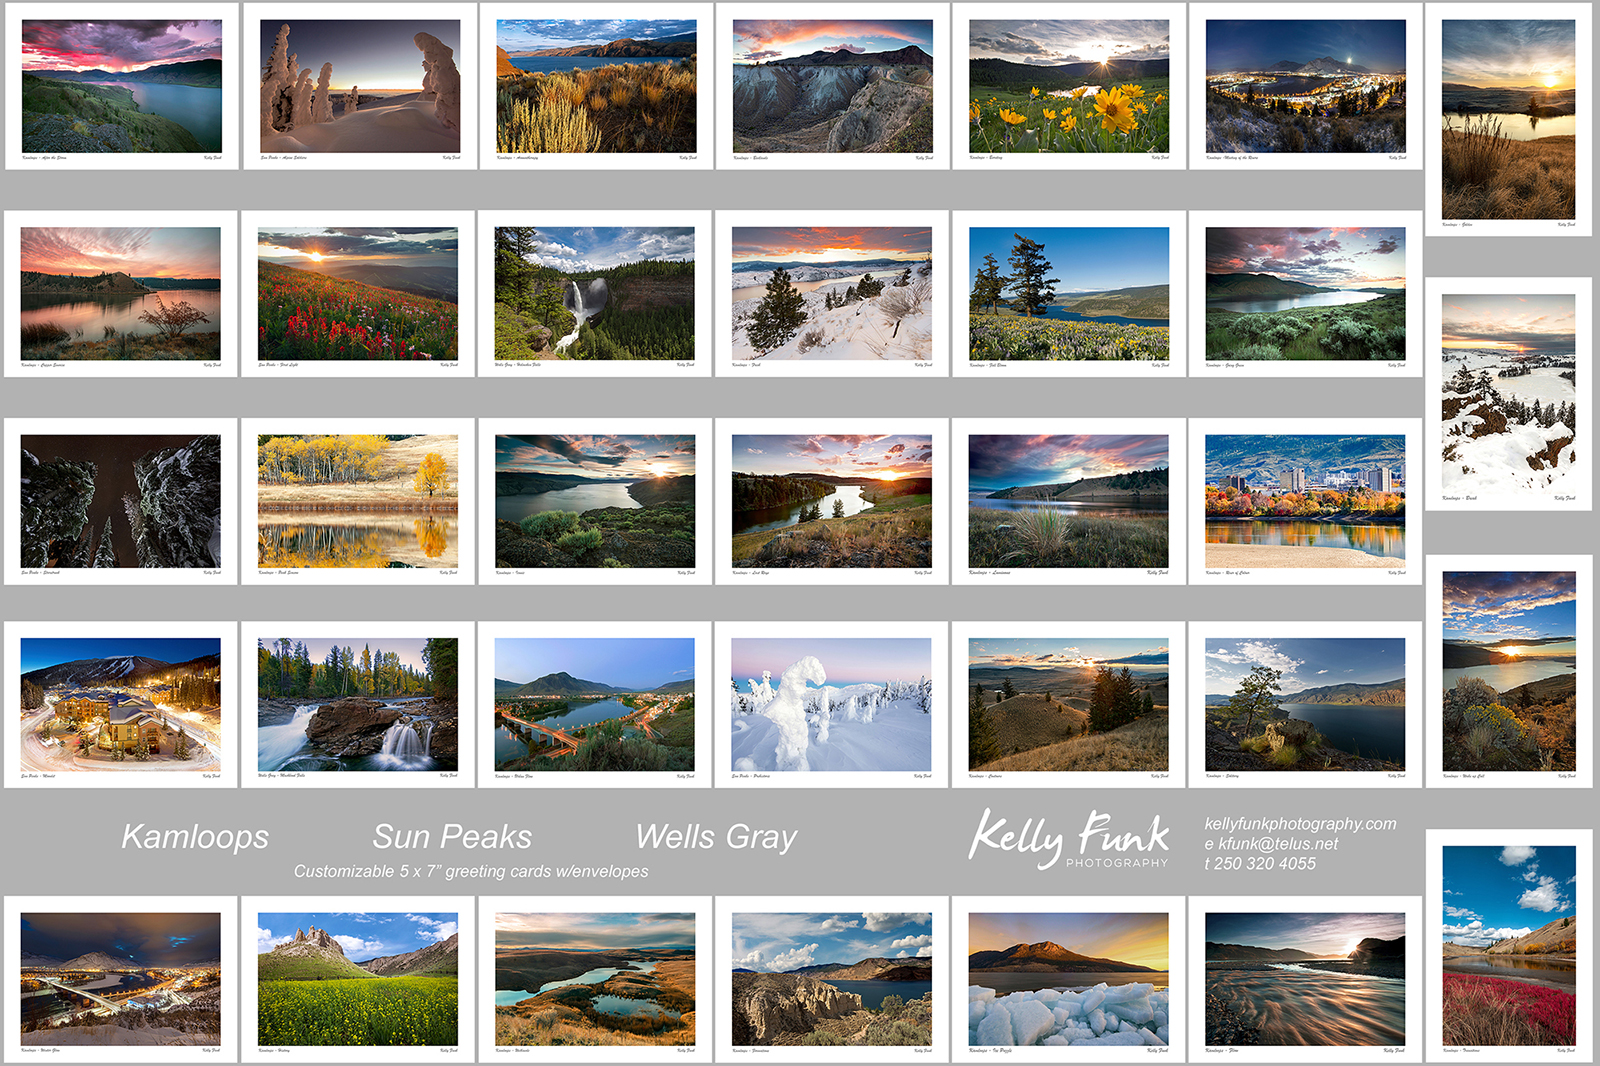 Full selection of Kamloops, Sun Peaks and Wells Gray personalized corporate greeting cards, British Columbia, Canada